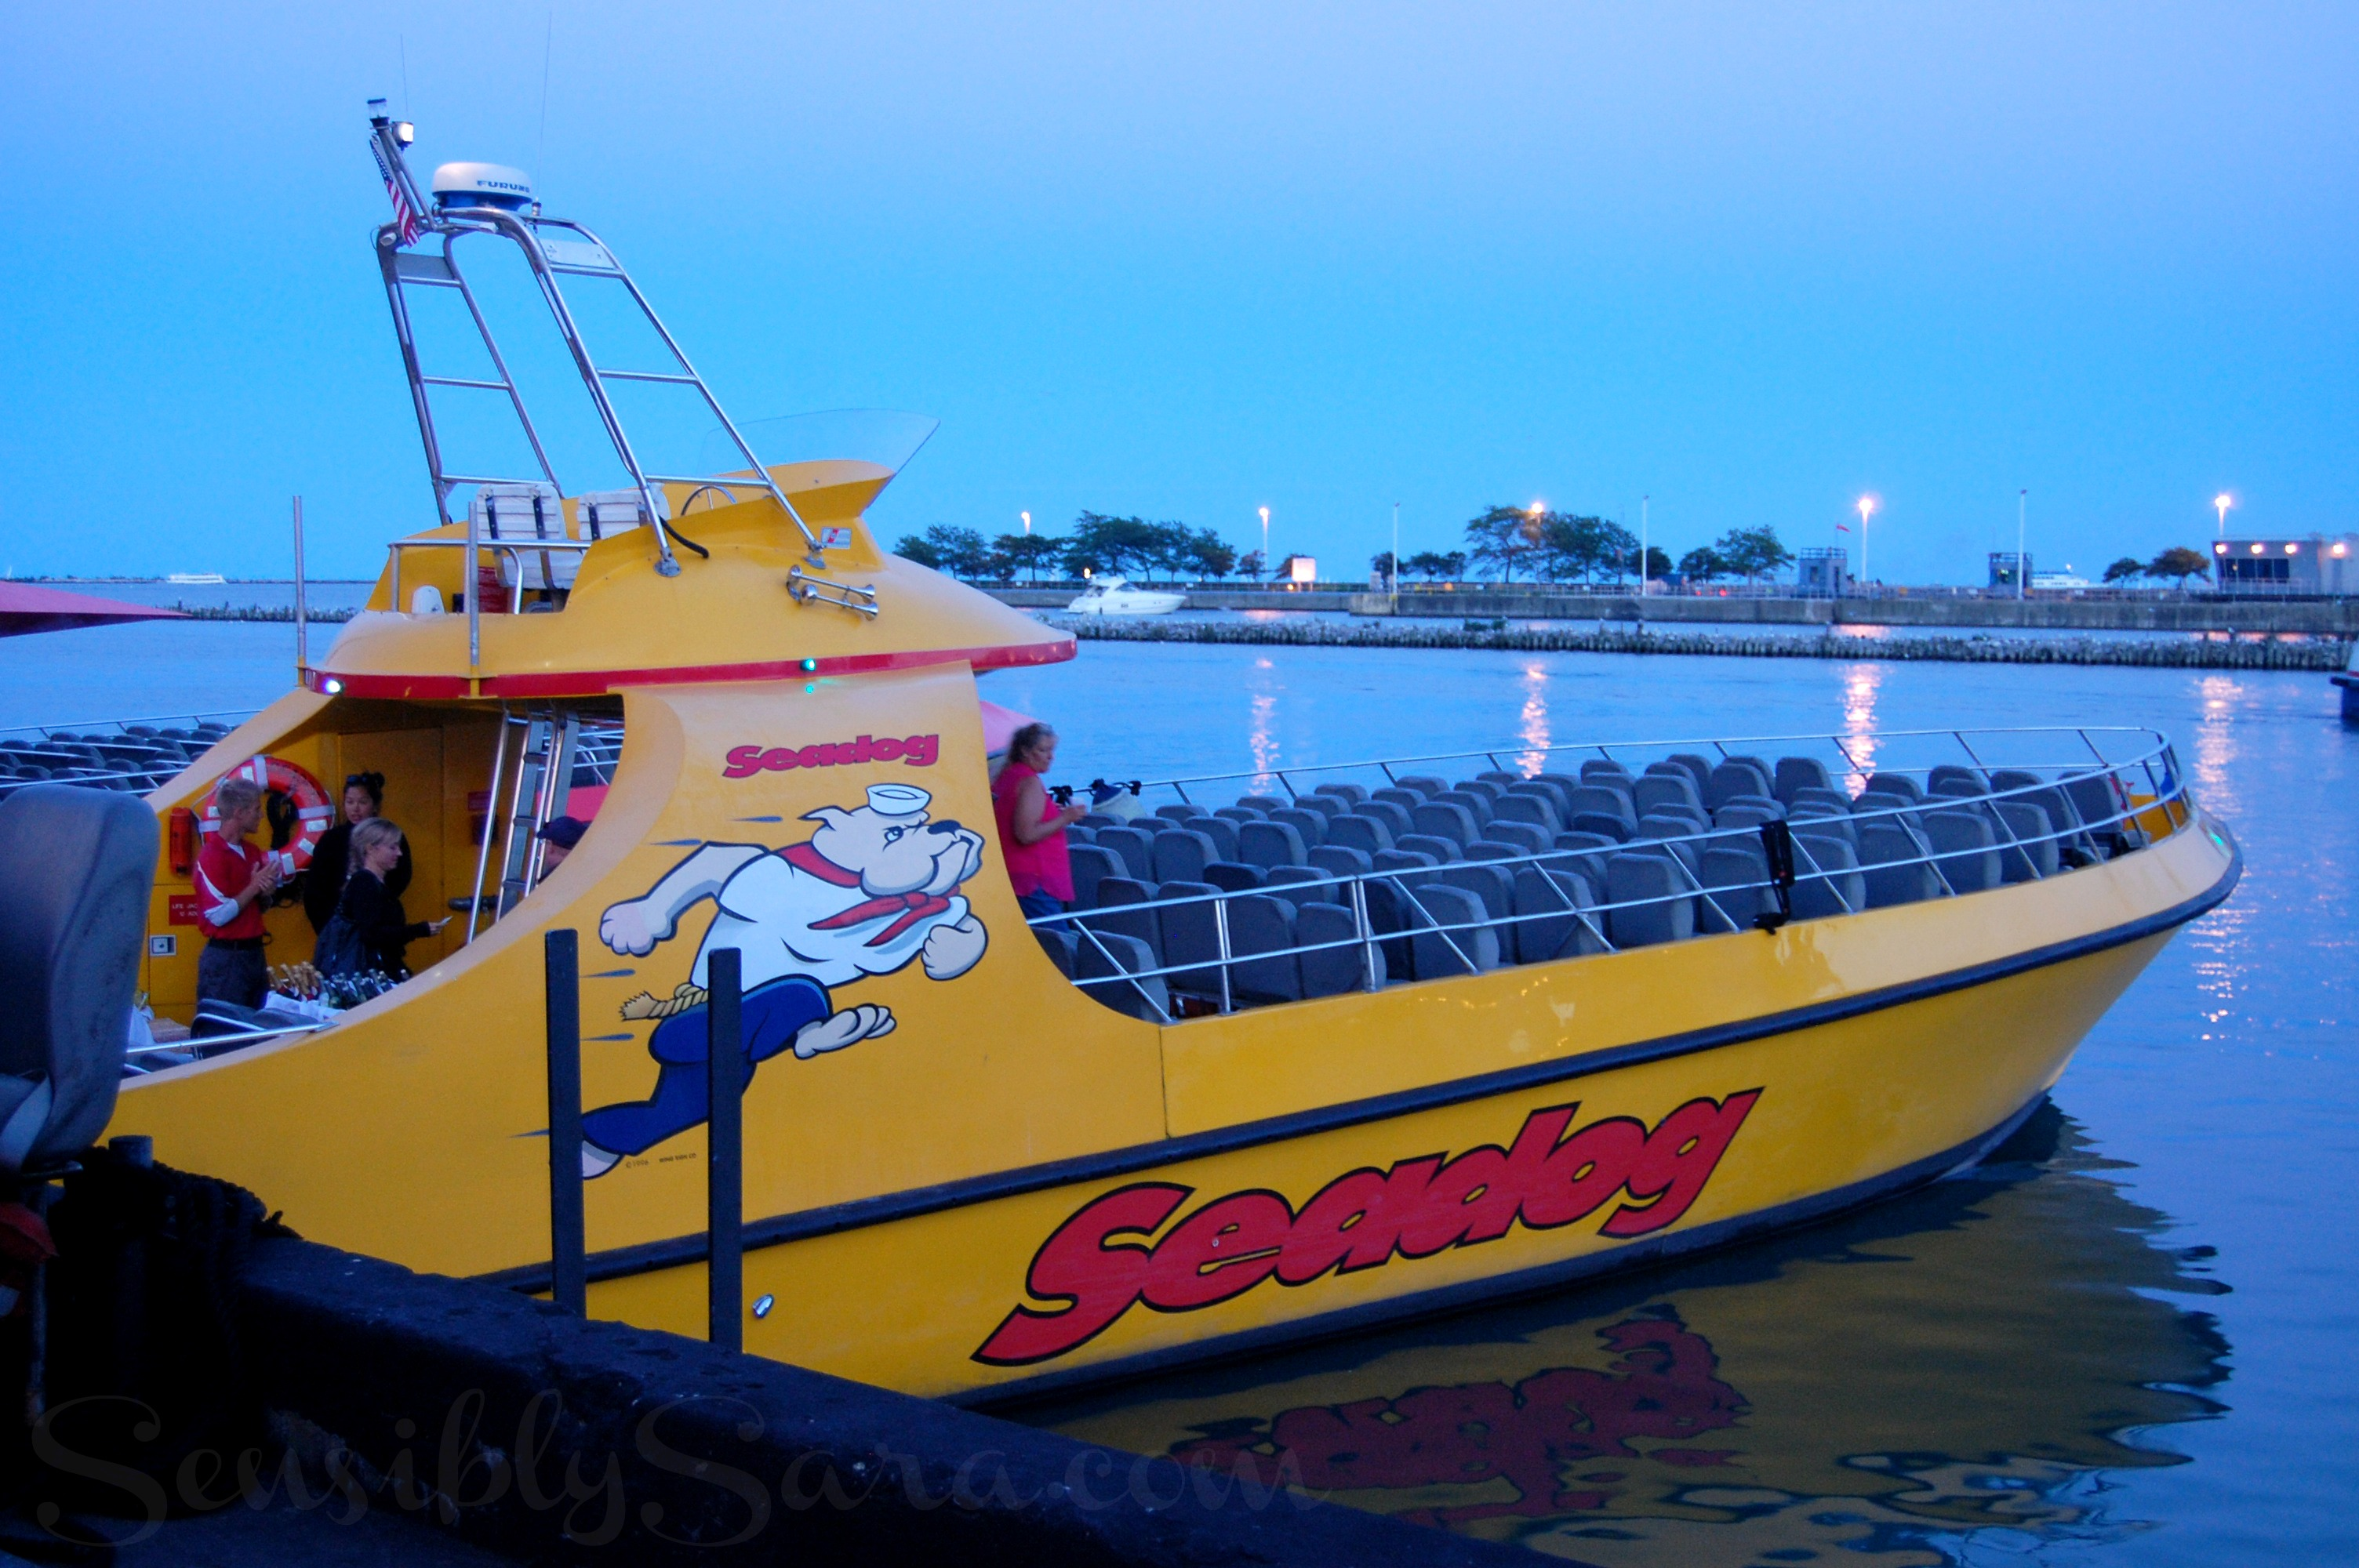 About Seadog Cruises Offering speedboat cruises to explore Lake Michigan and the Chicago River. Lakefront sightseeing cruises and architectural river tours depart daily from Navy Pier.